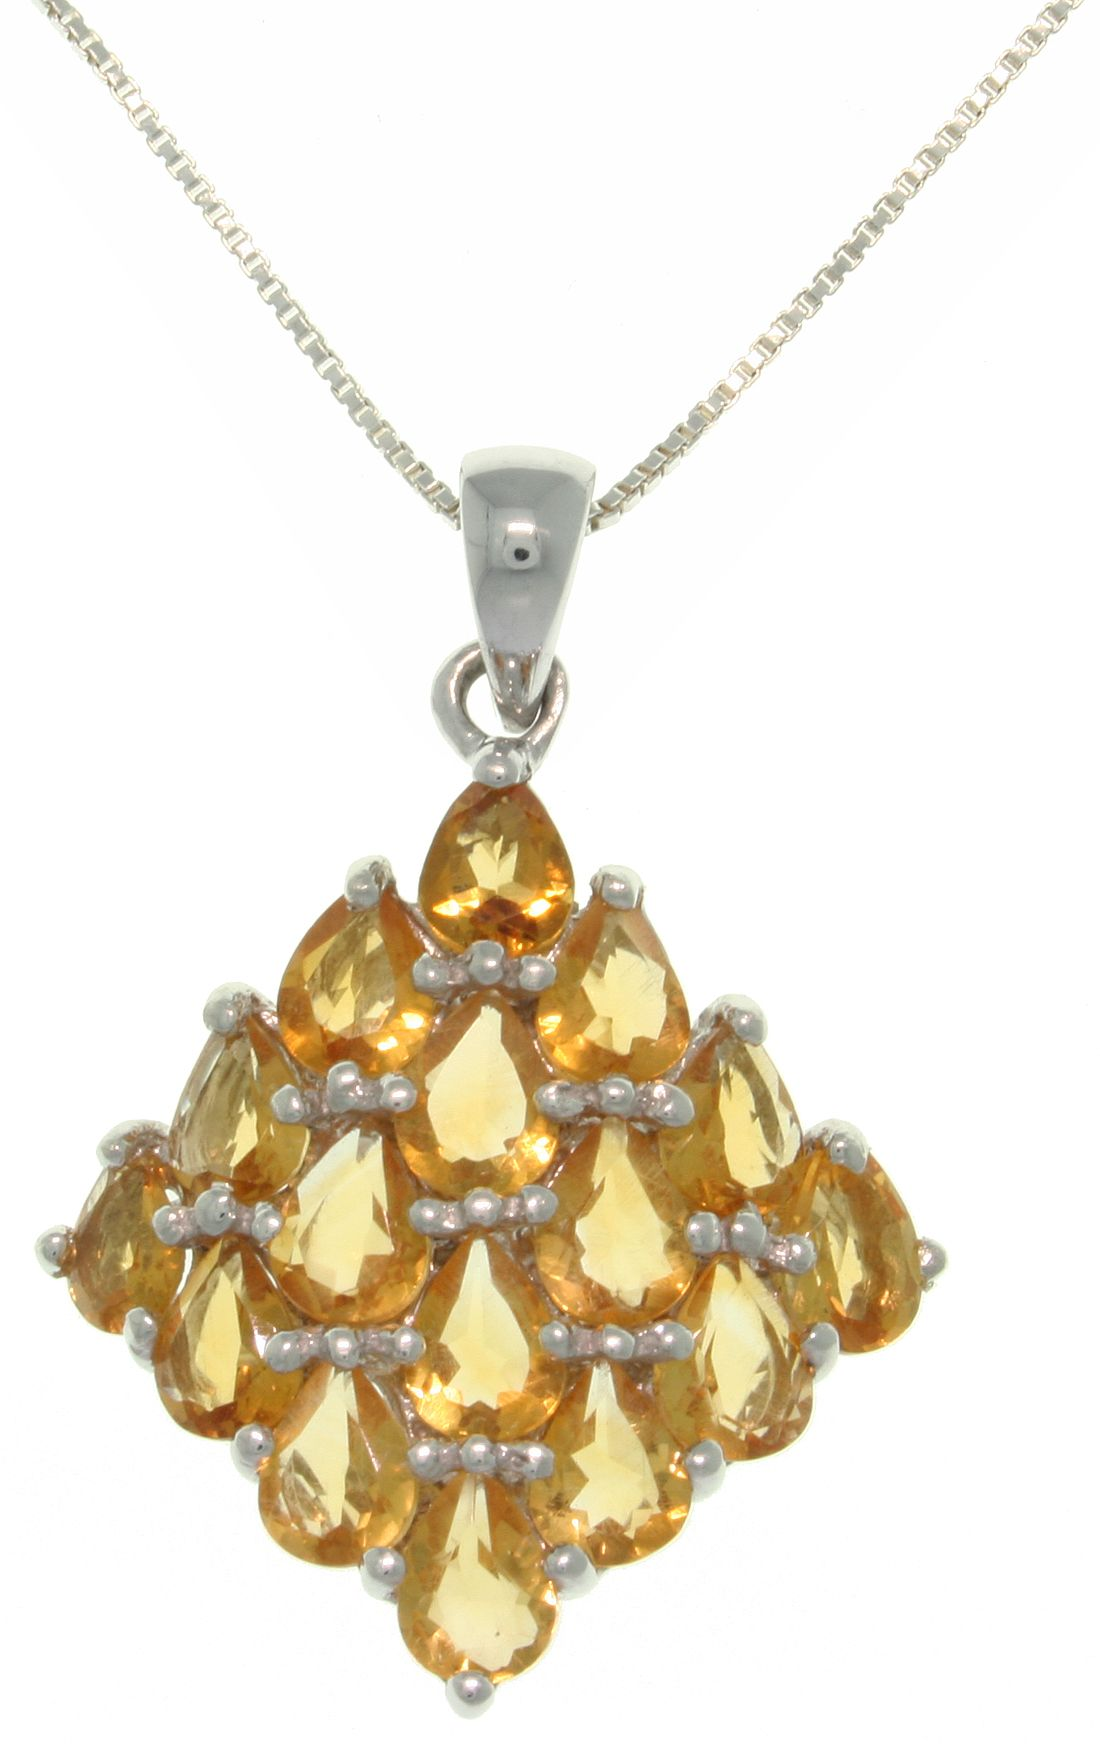 Jewelry Trends Sterling Silver and Citrine Pendant with 18 Inch Box Chain Necklace